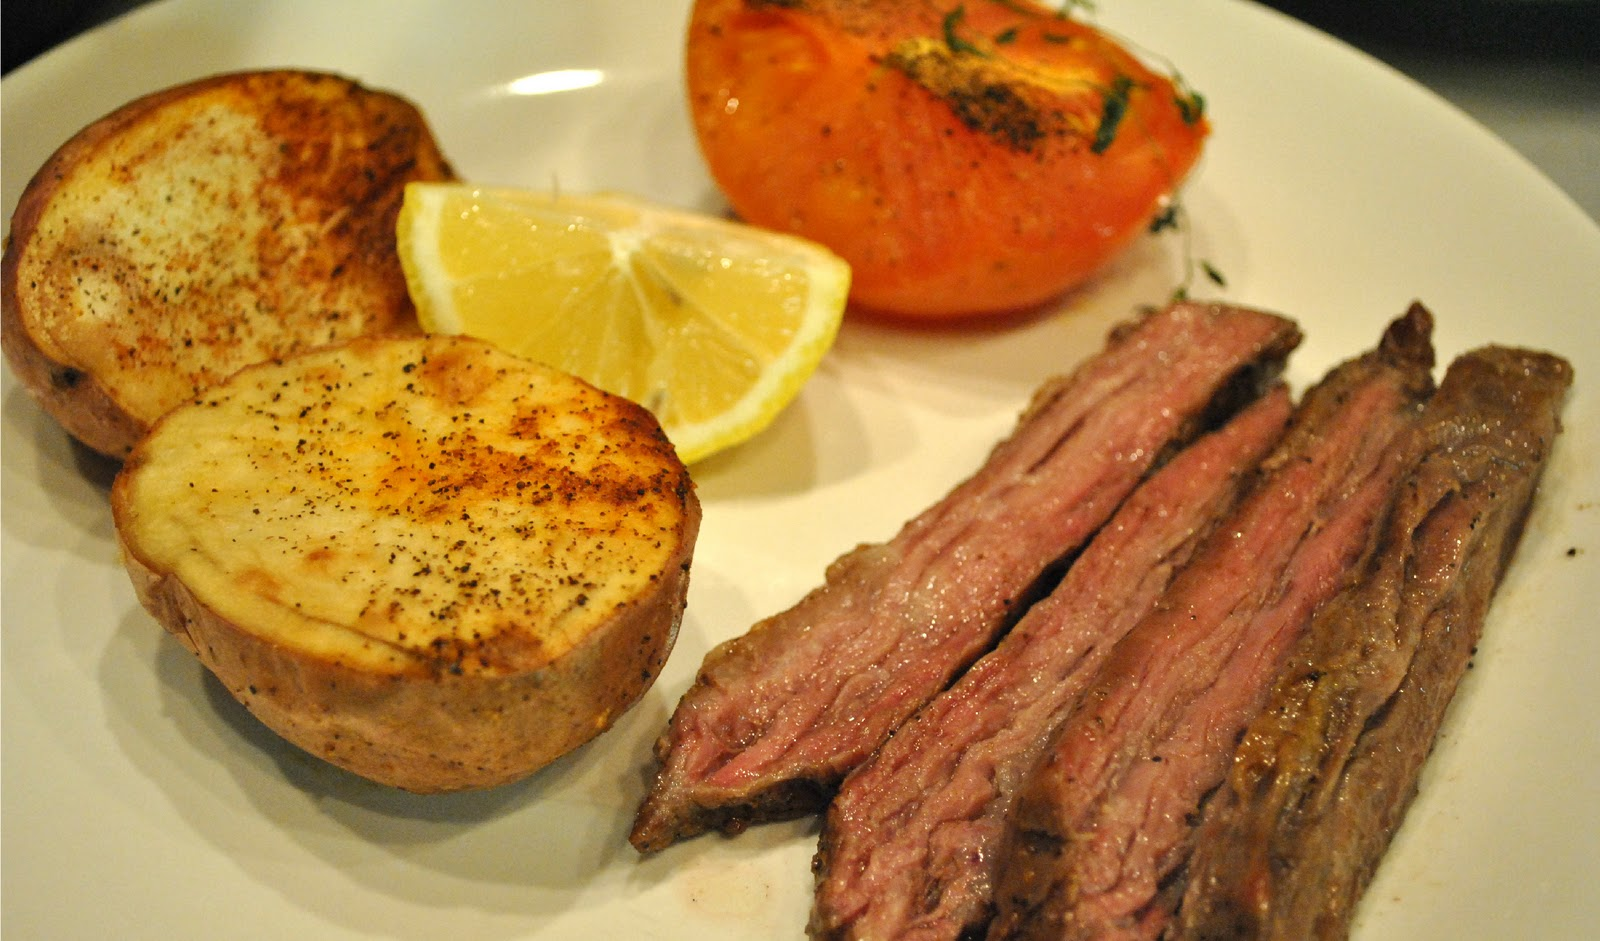 Skirt steak with lemon, chili-roasted potatoes, and roasted tomatoes